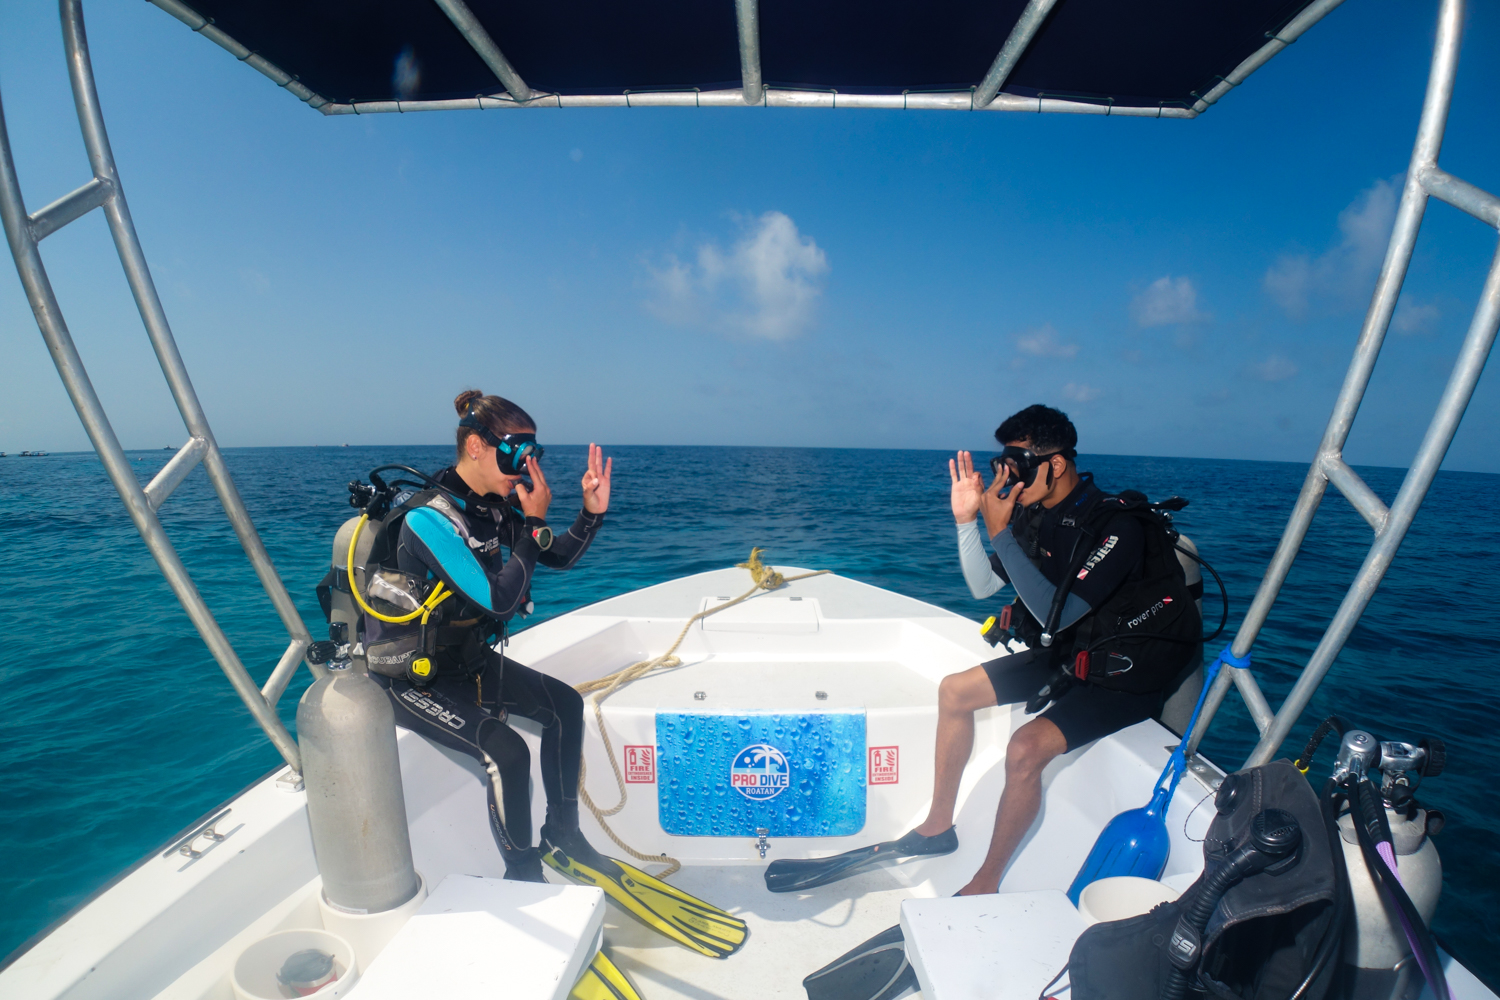 My favorite scuba diving course to teach